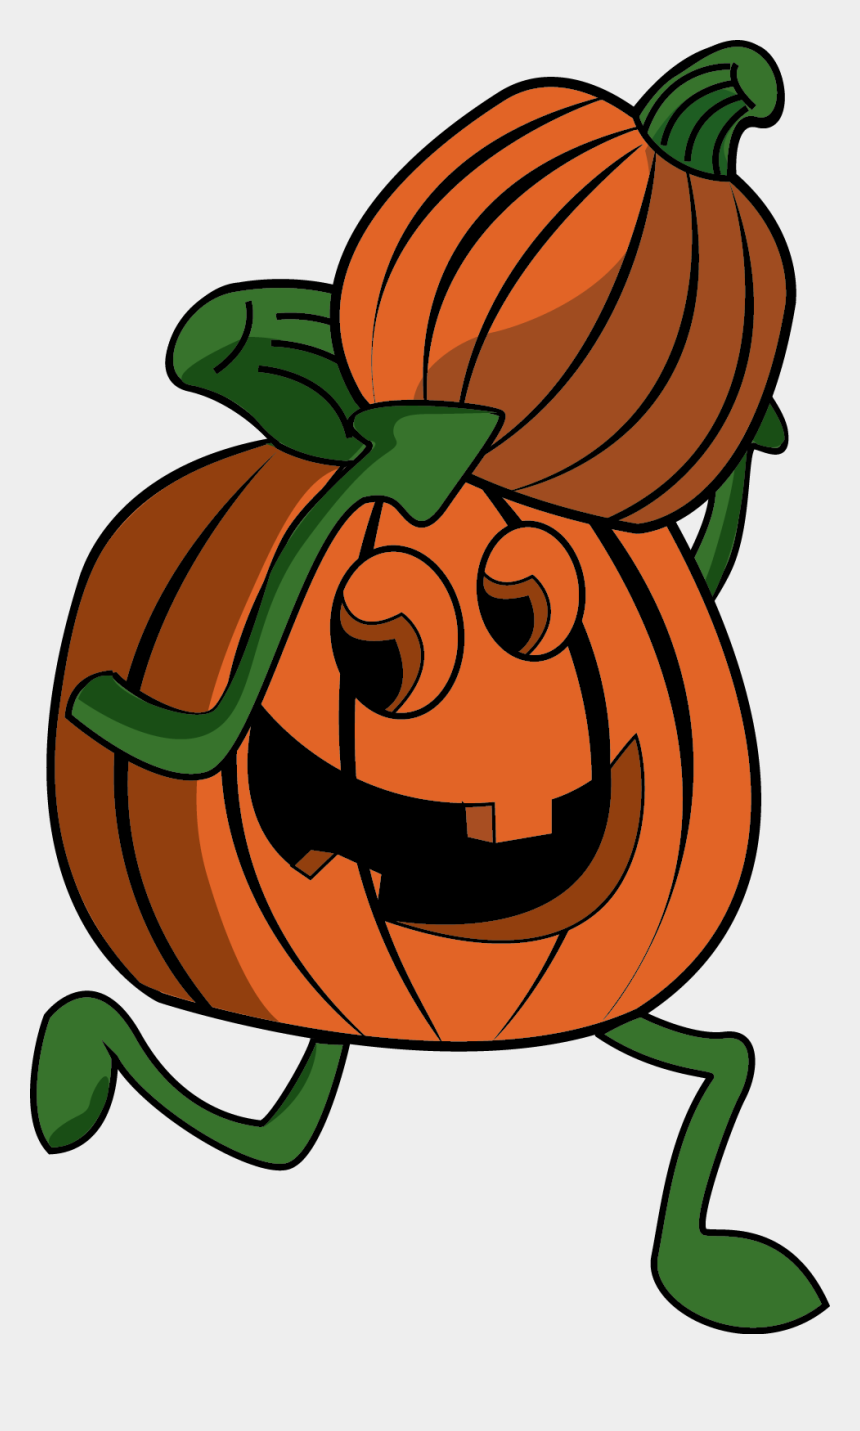 the great pumpkin clipart, Cartoons - Sep 27, 2014 The Great Pumpkin Run The Great Pumpkin - Pumpkin